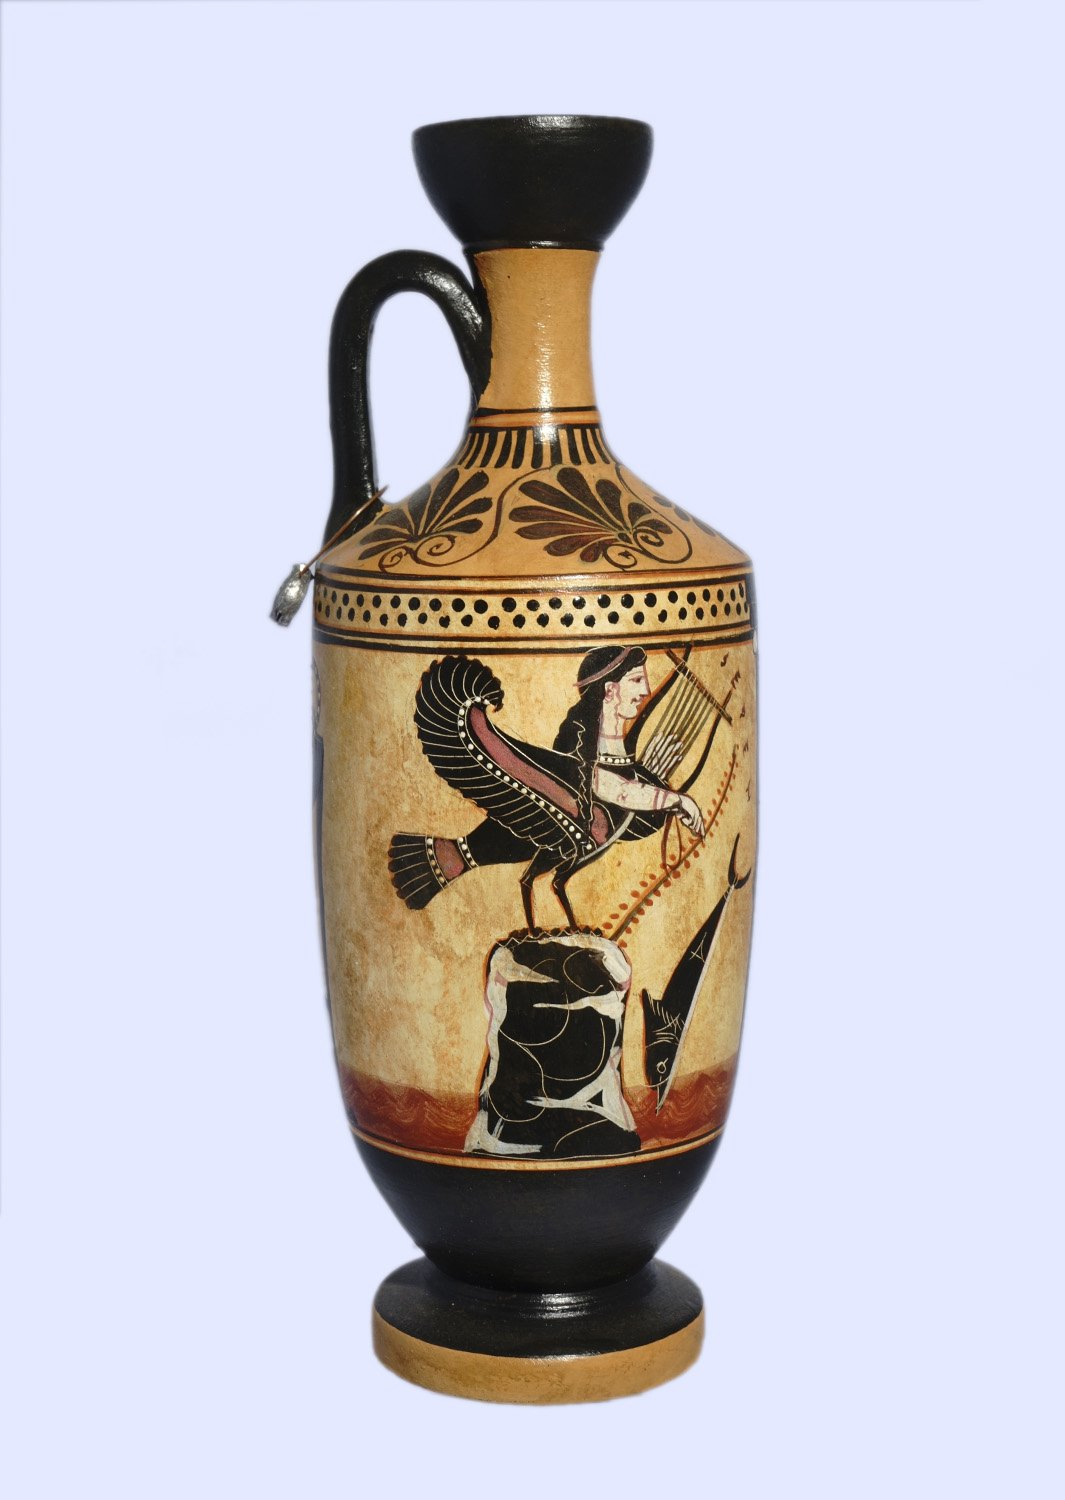 Archaic black-figure lekythos with Odysseus and the Sirens